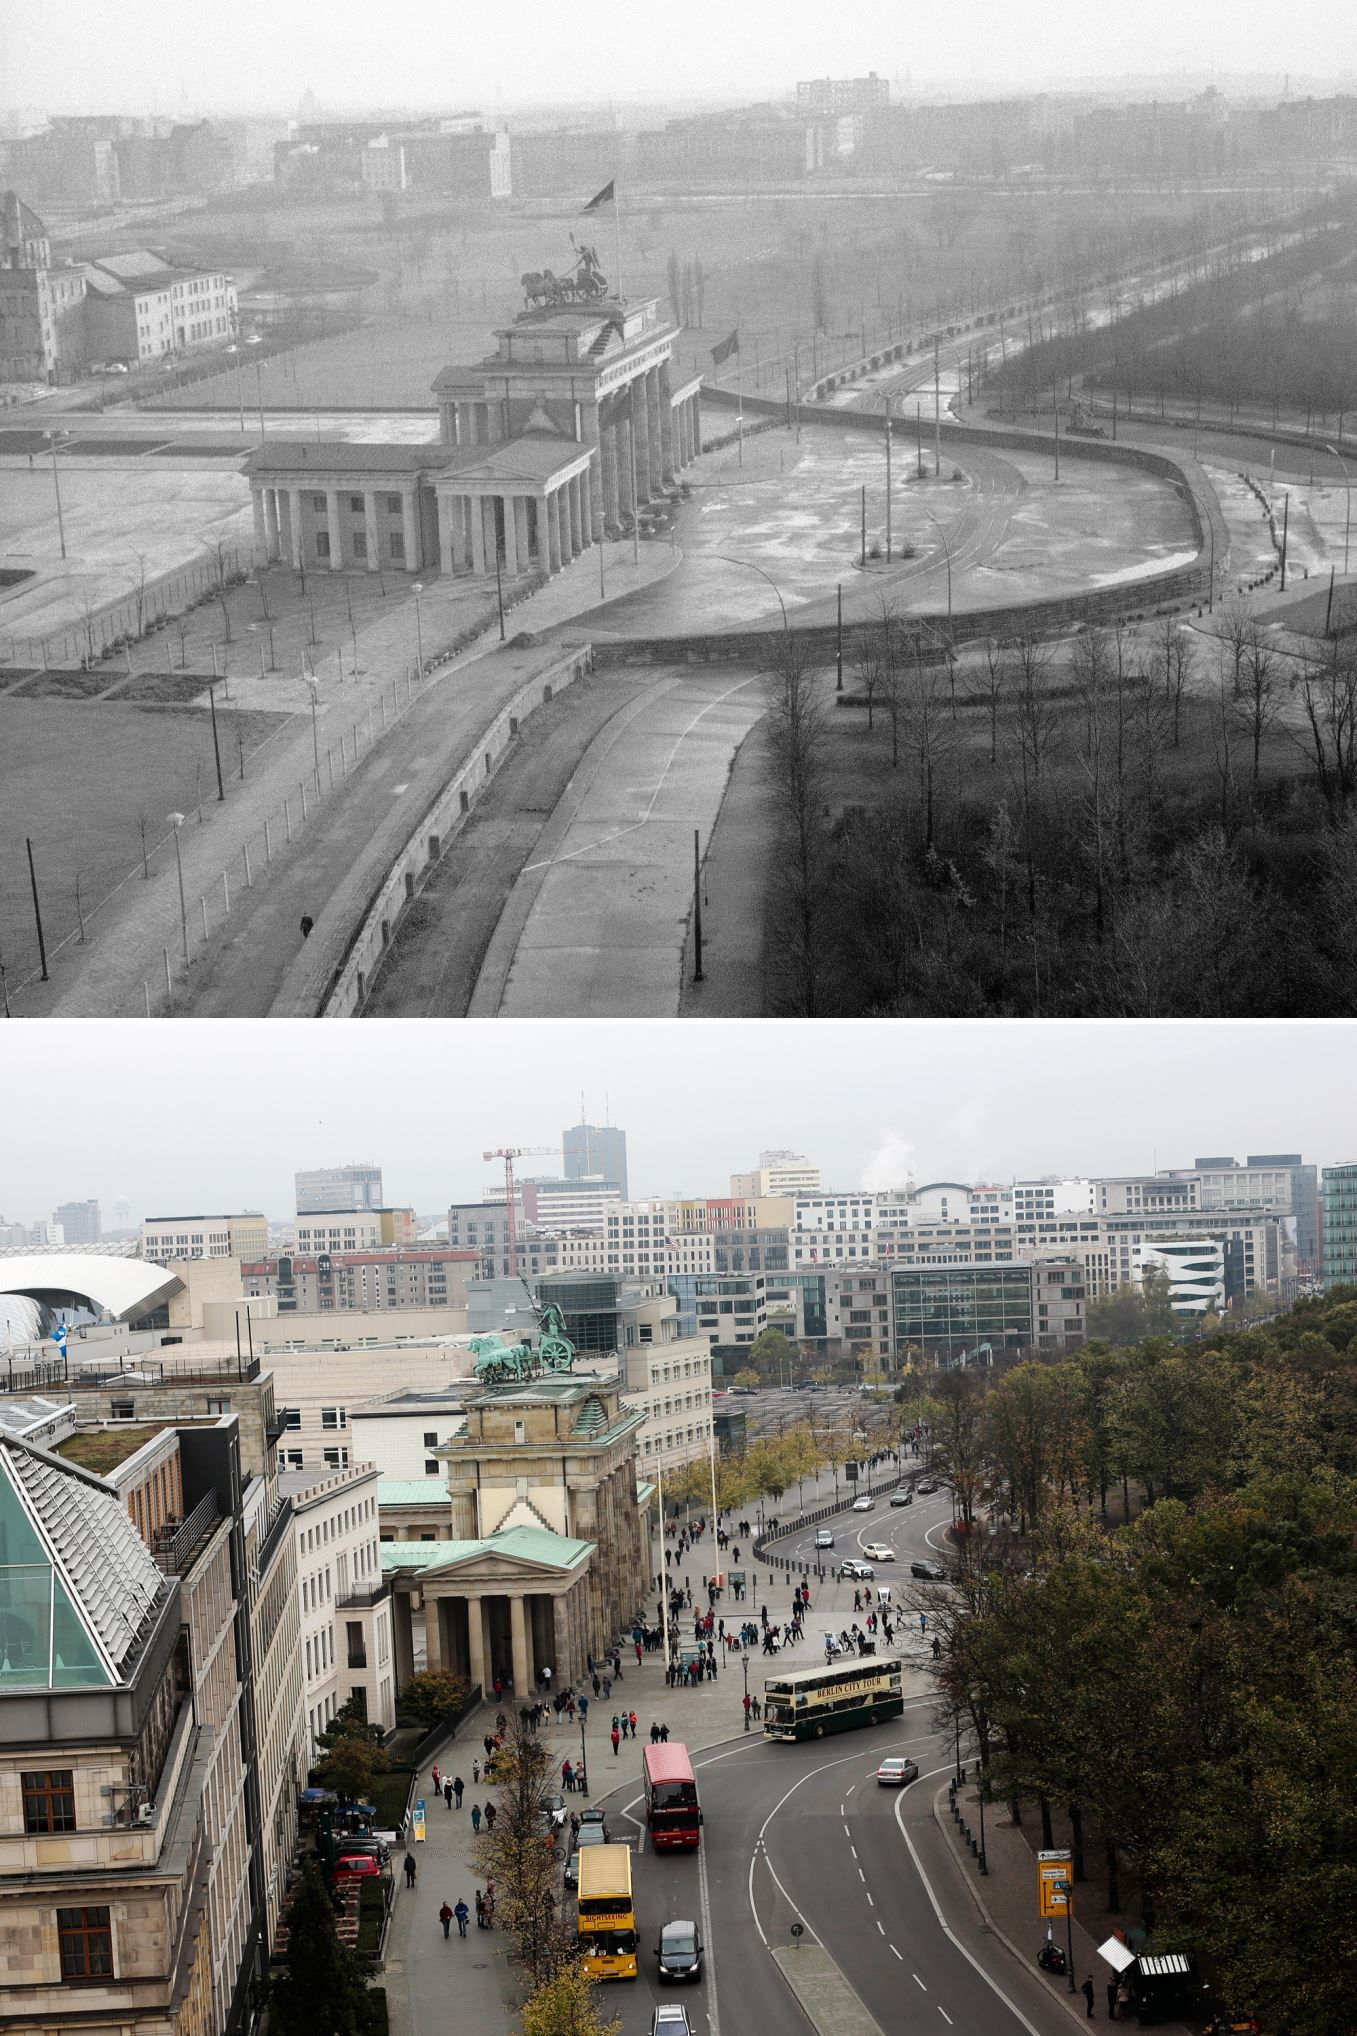 Berlin Wall Then And Now Berlin Wall Around Brandenburg Gate In November 1961 And Below Traffic At The Same Area In Avec Images Paysage Incroyable Voyage Dans Le Temps